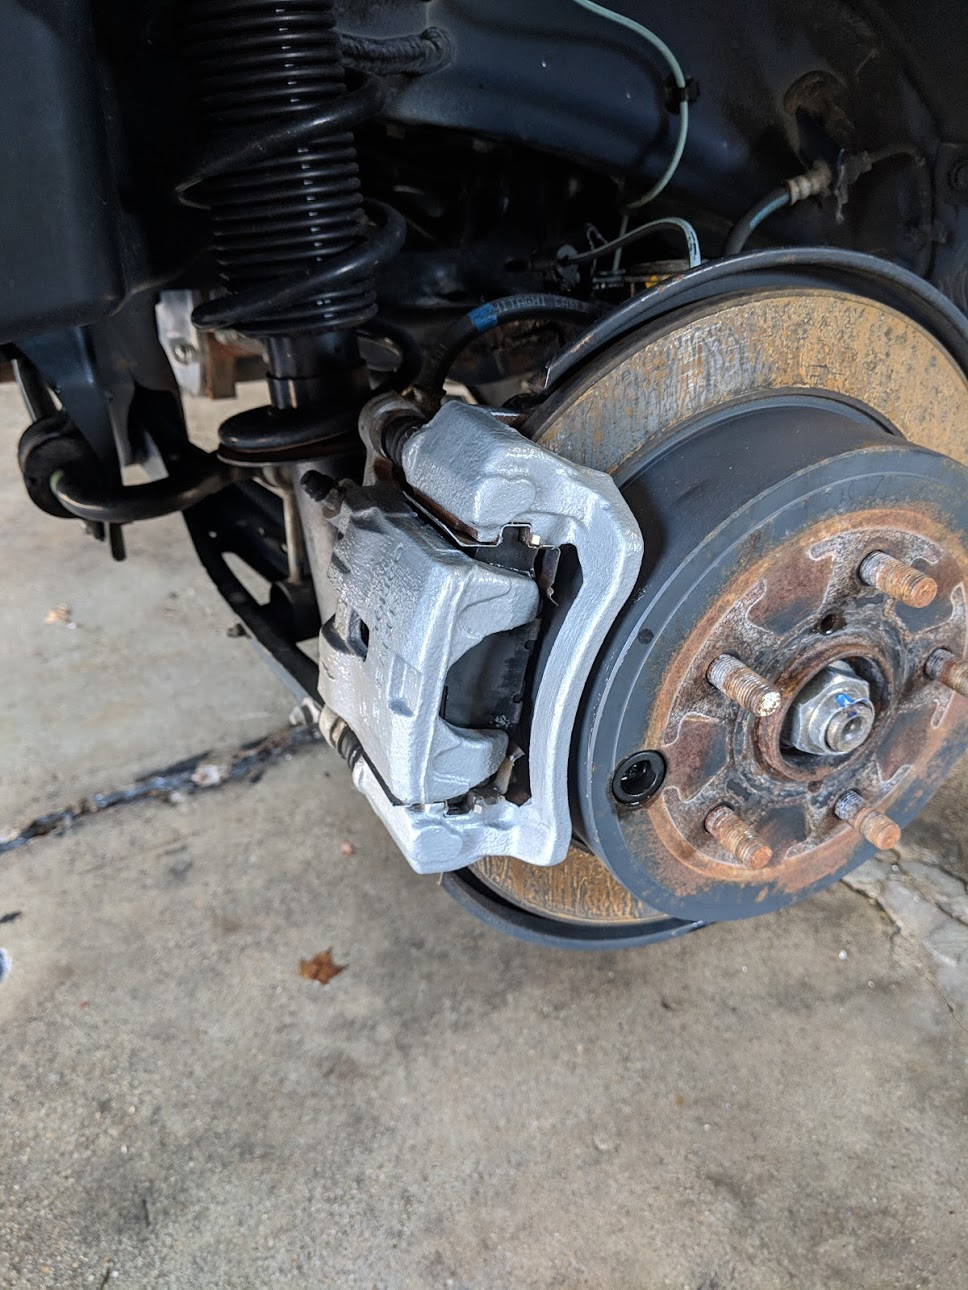 The DIY painted calipers